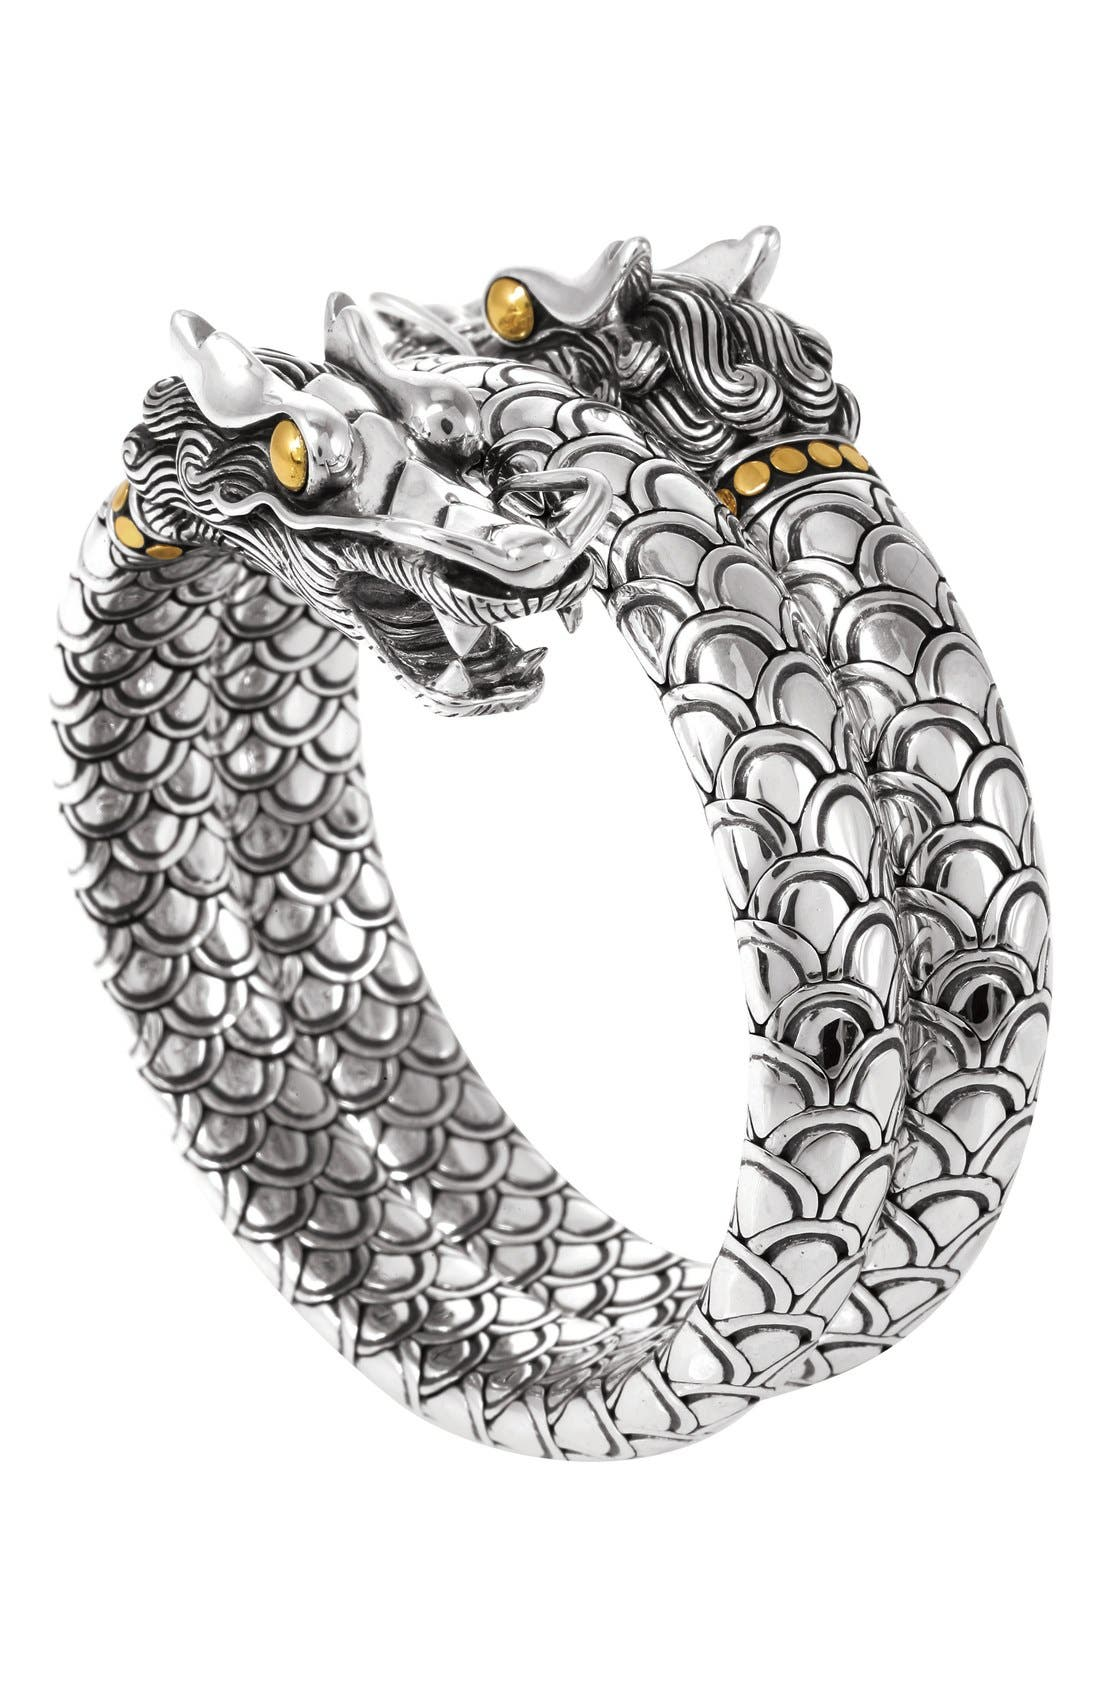 'Naga' Double Coil Dragon Bracelet,                         Main,                         color, SILVER/ GOLD